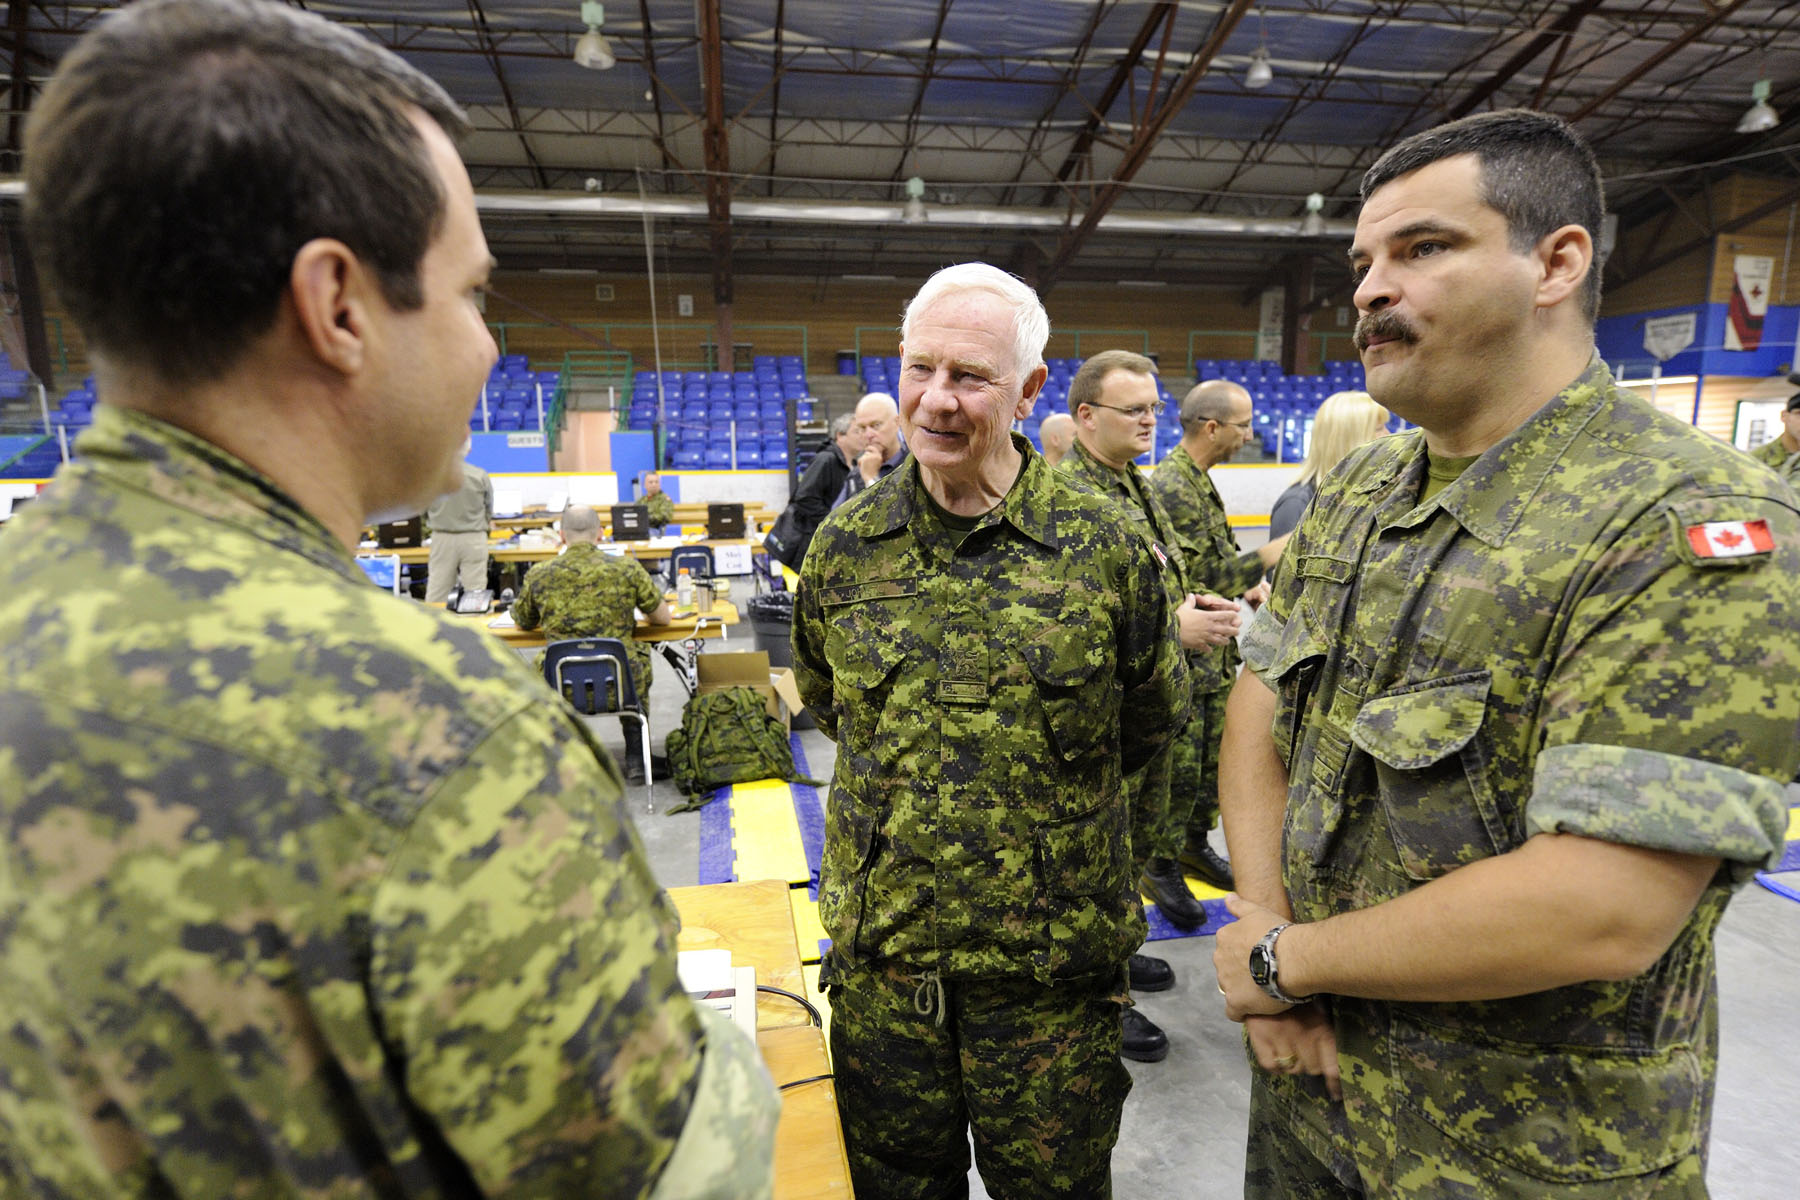 His Excellency met with Canadian Armed Forces members working at the headquarters.